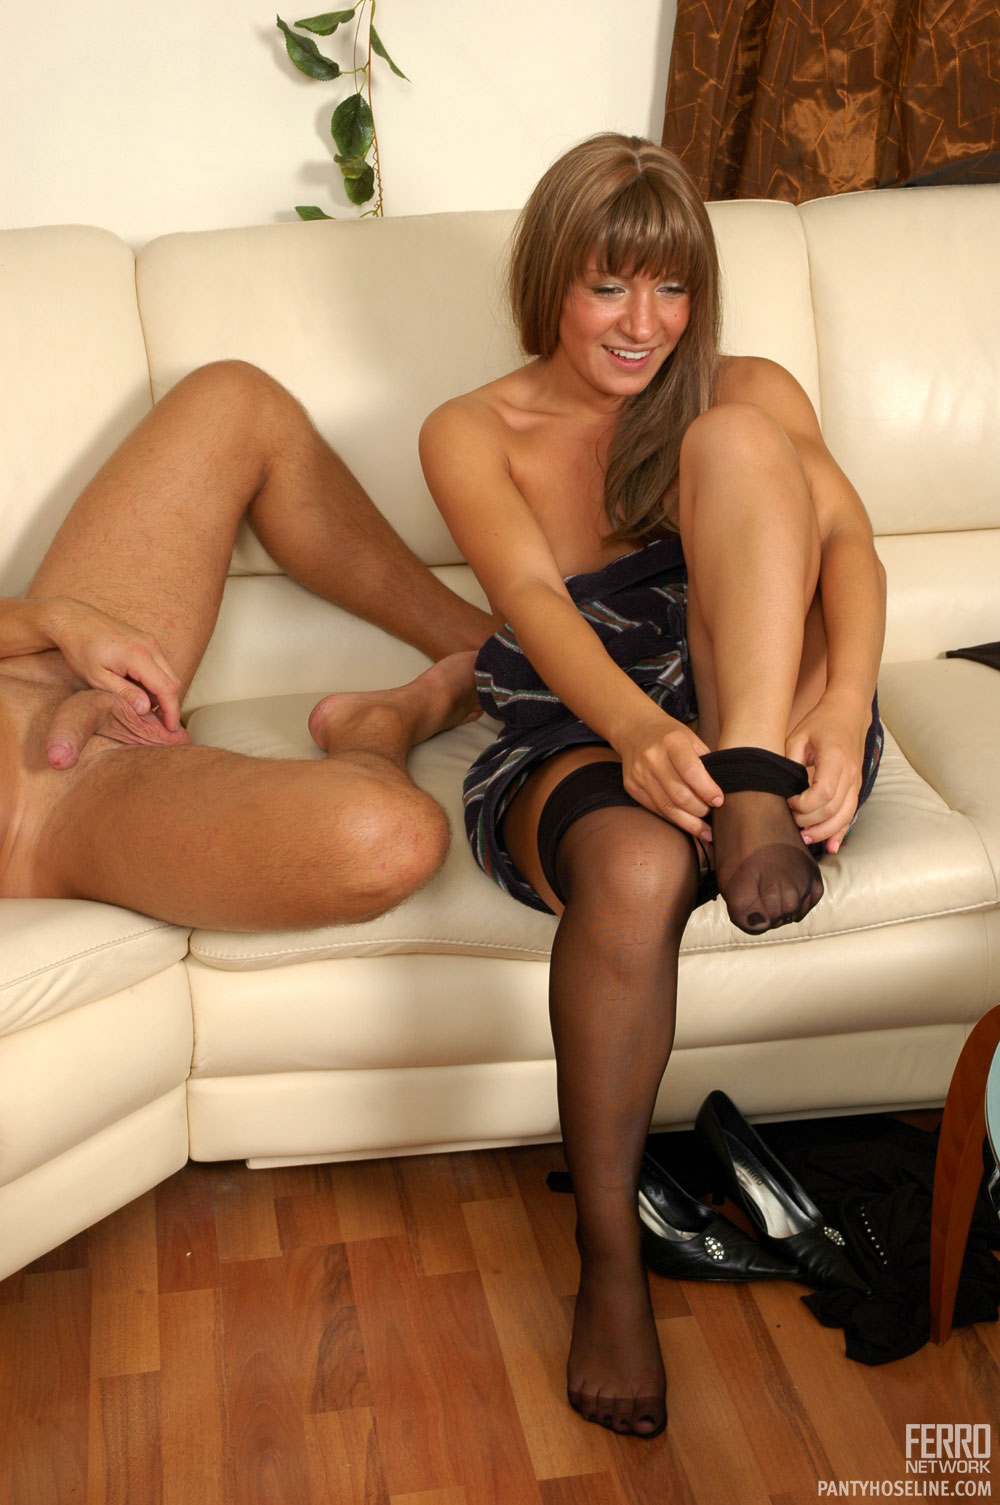 Understood not Between the nude legs hot womens pic